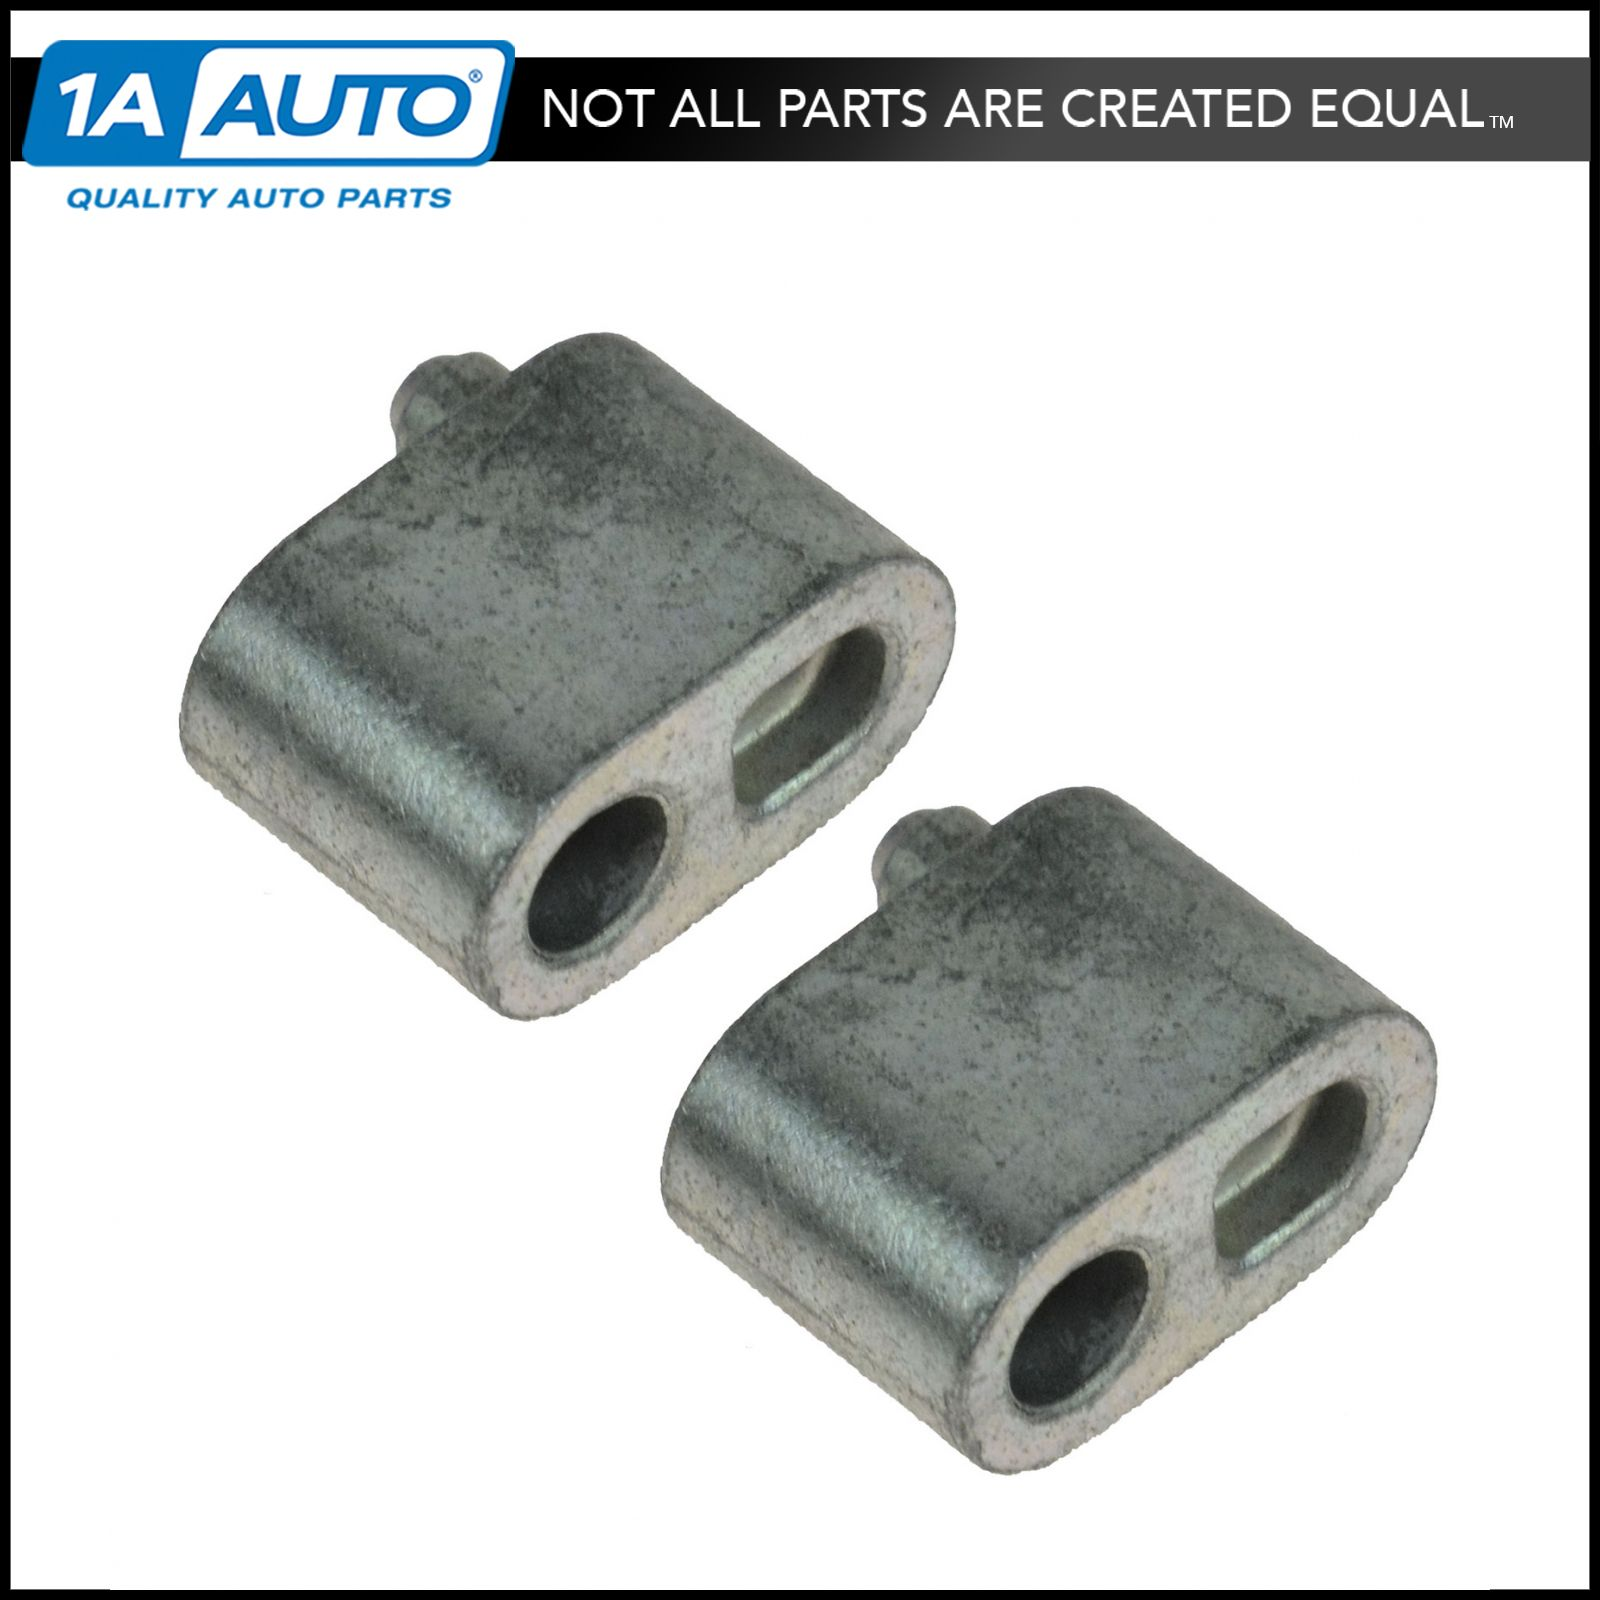 Engine Coolant Block Off Bypass Plug Pair for Buick Cadillac Chevy Pontiac